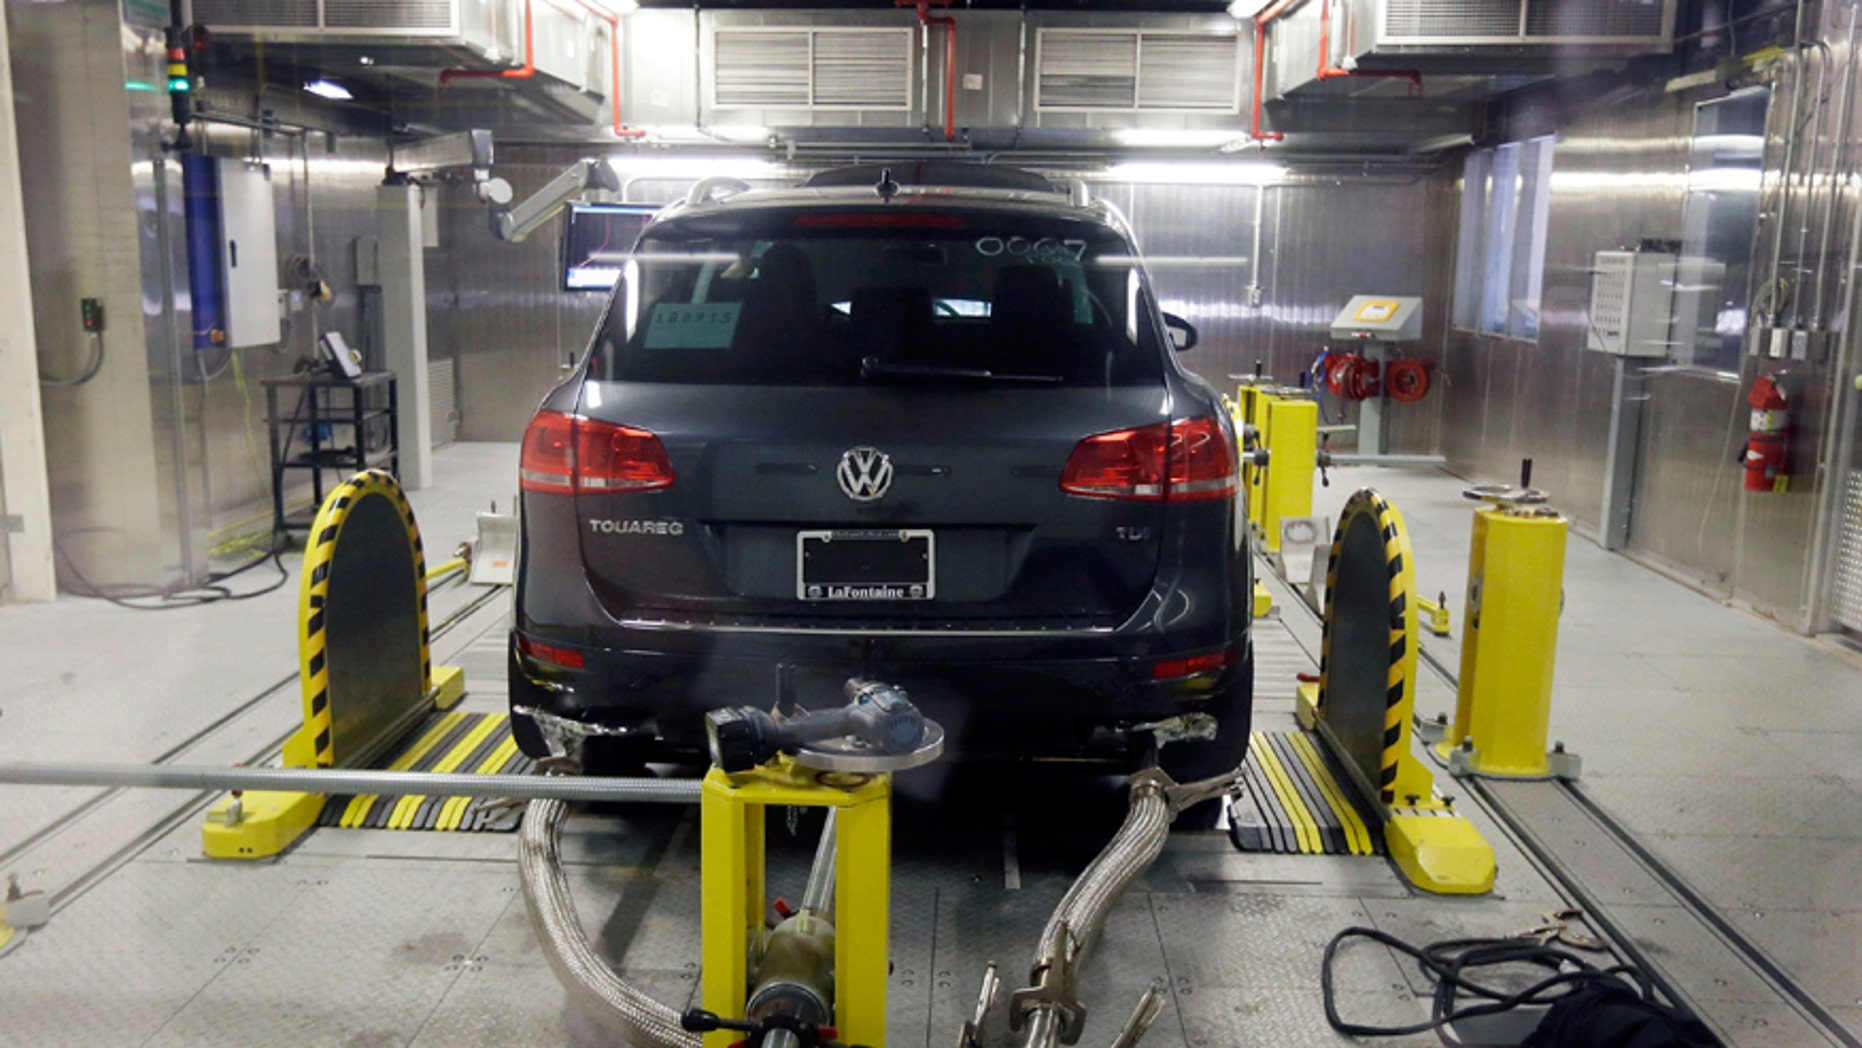 FILE - In this Oct. 13, 2015, file photo, a Volkswagen Touareg diesel is tested in the Environmental Protection Agency's cold temperature test facility in Ann Arbor, Mich. The imminent criminal plea deal between Volkswagen and U.S. prosecutors in an emissions-cheating scandal could be bad news for one group of people: VW employees who had a role in the deceit or subsequent cover-up. VW on Tuesday, Jan. 10, 2017, disclosed that it is in advanced talks to settle the criminal case by pleading guilty to unspecified charges and paying $4.3 billion in criminal and civil fines, a sum far larger than any recent case involving the auto industry. (AP Photo/Carlos Osorio, File)